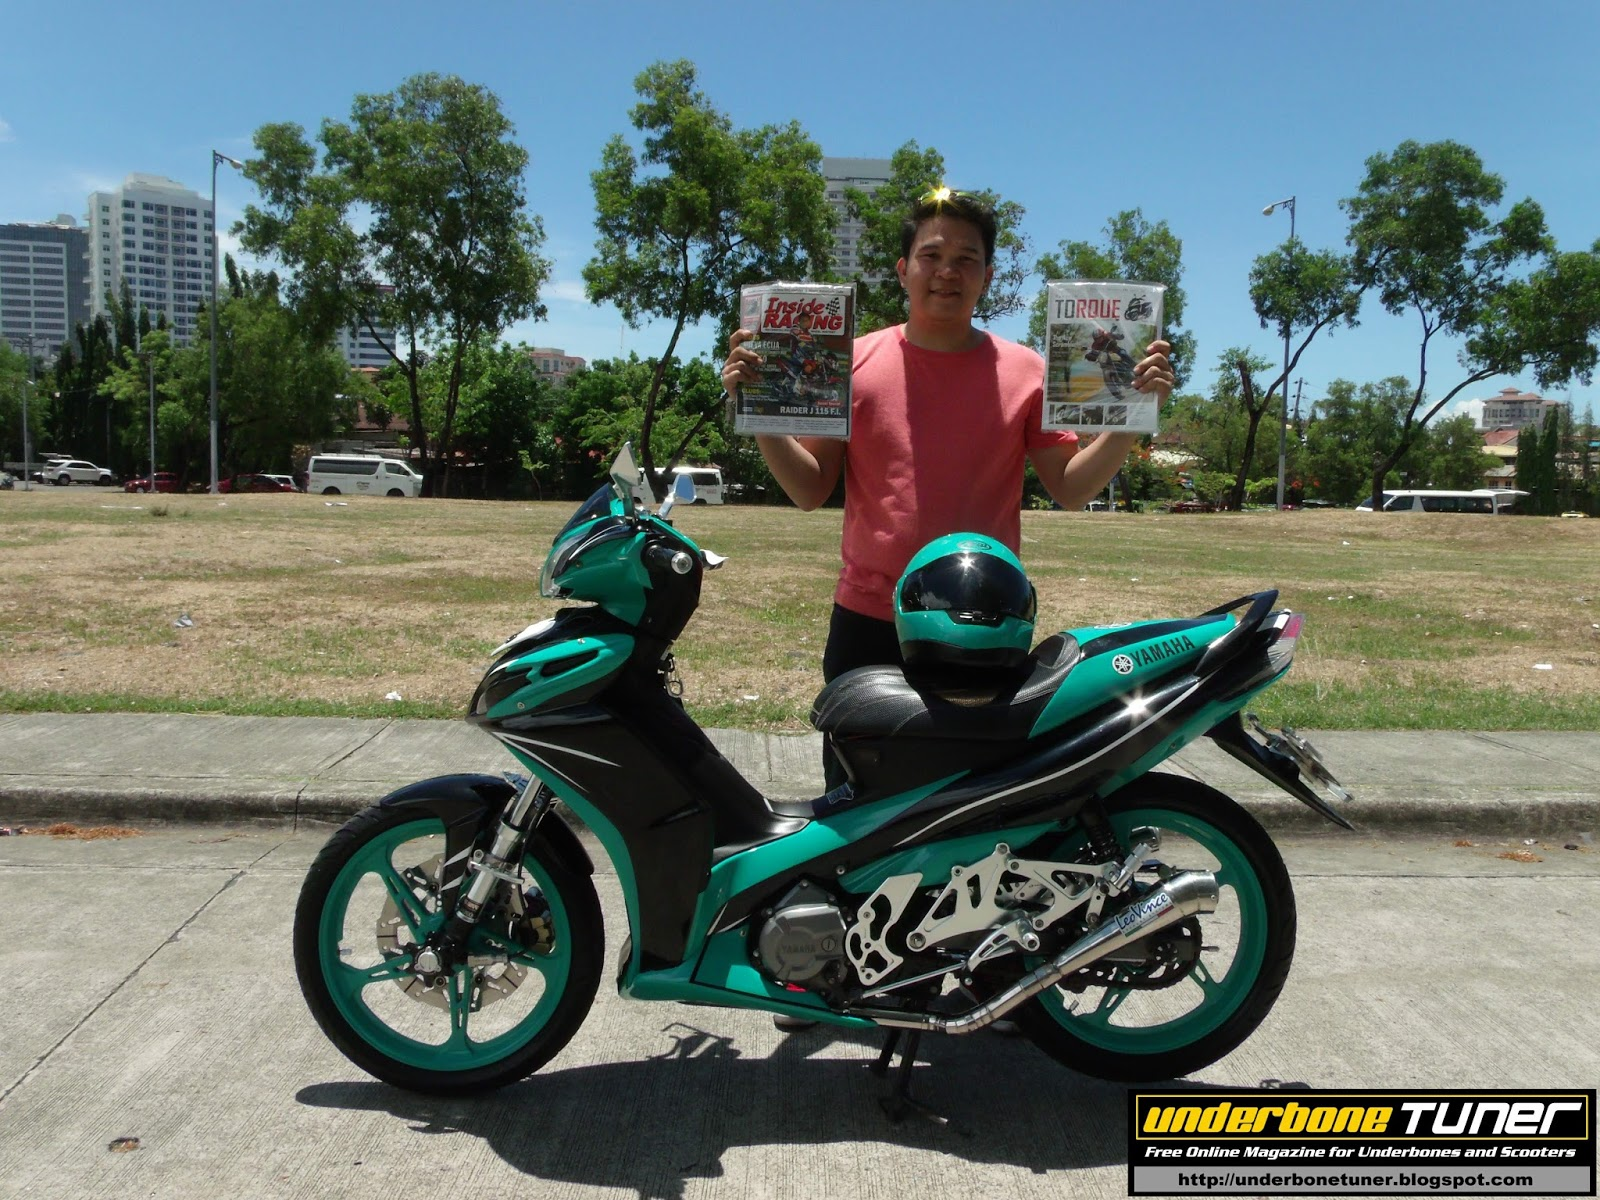 Underbone Tuner: Petronas Fomula 1 Team Inspired Modified